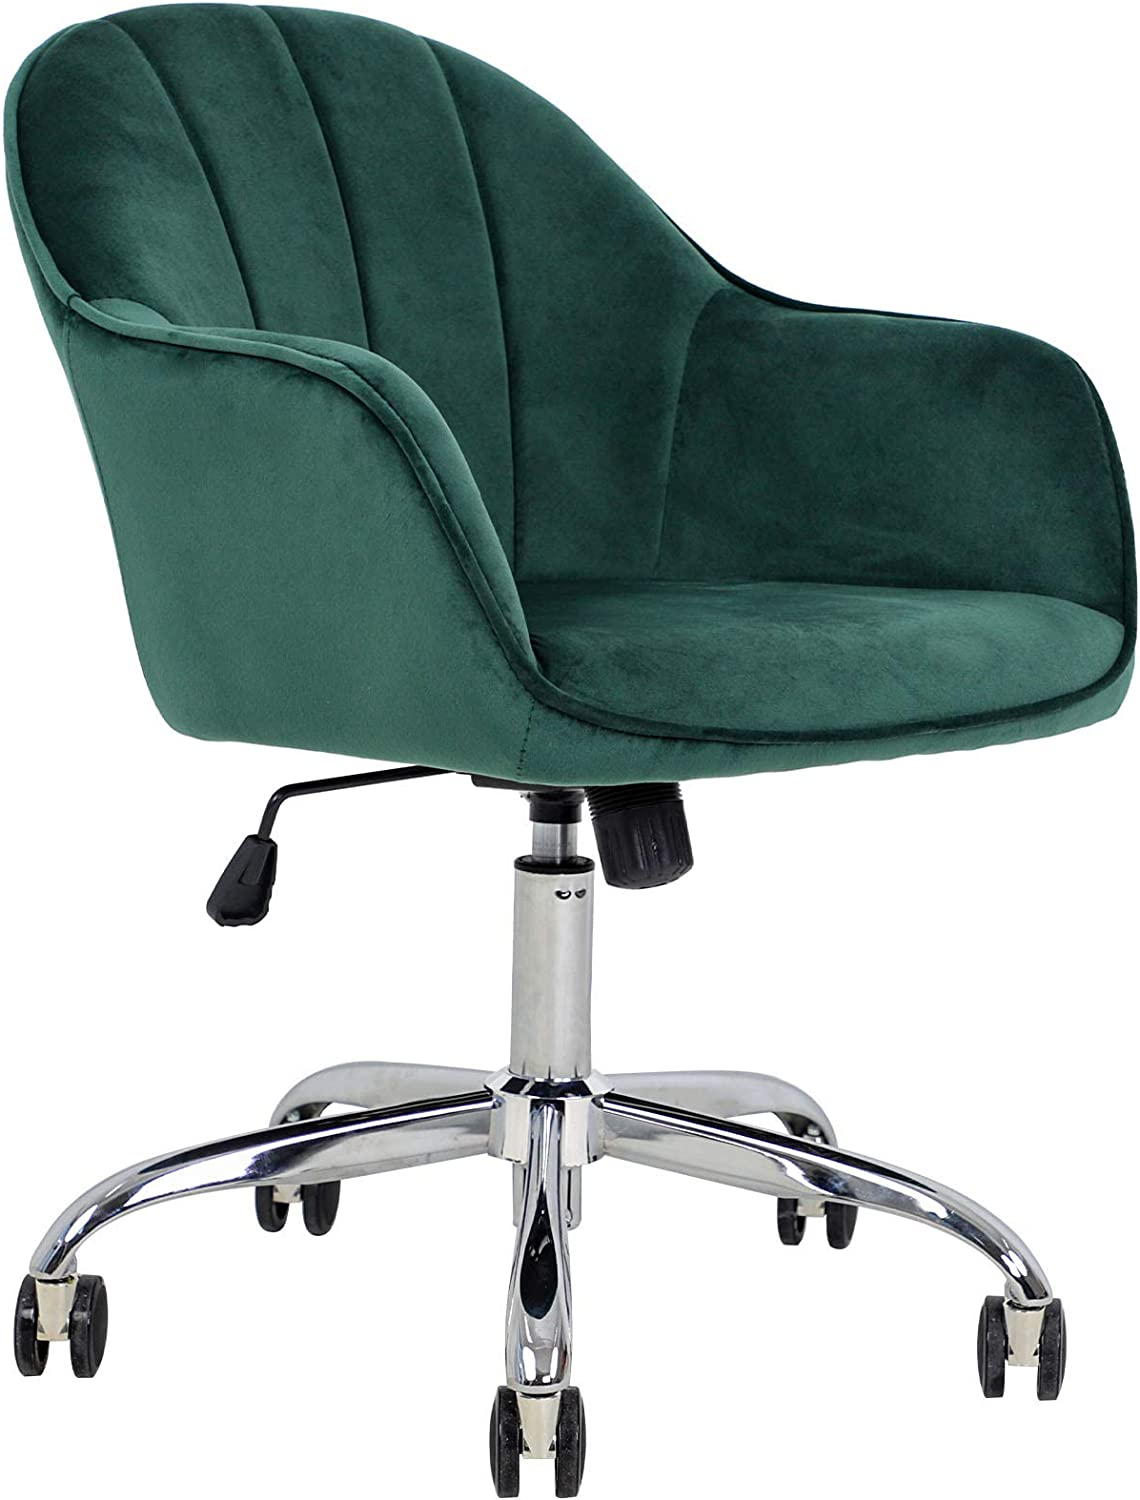 J&L Furniture Modern Design Velvet Desk Chair Mid-Back Home Office Chair Swivel Adjustable Task Chair Executive Accent Chair with Soft Seat (Green)